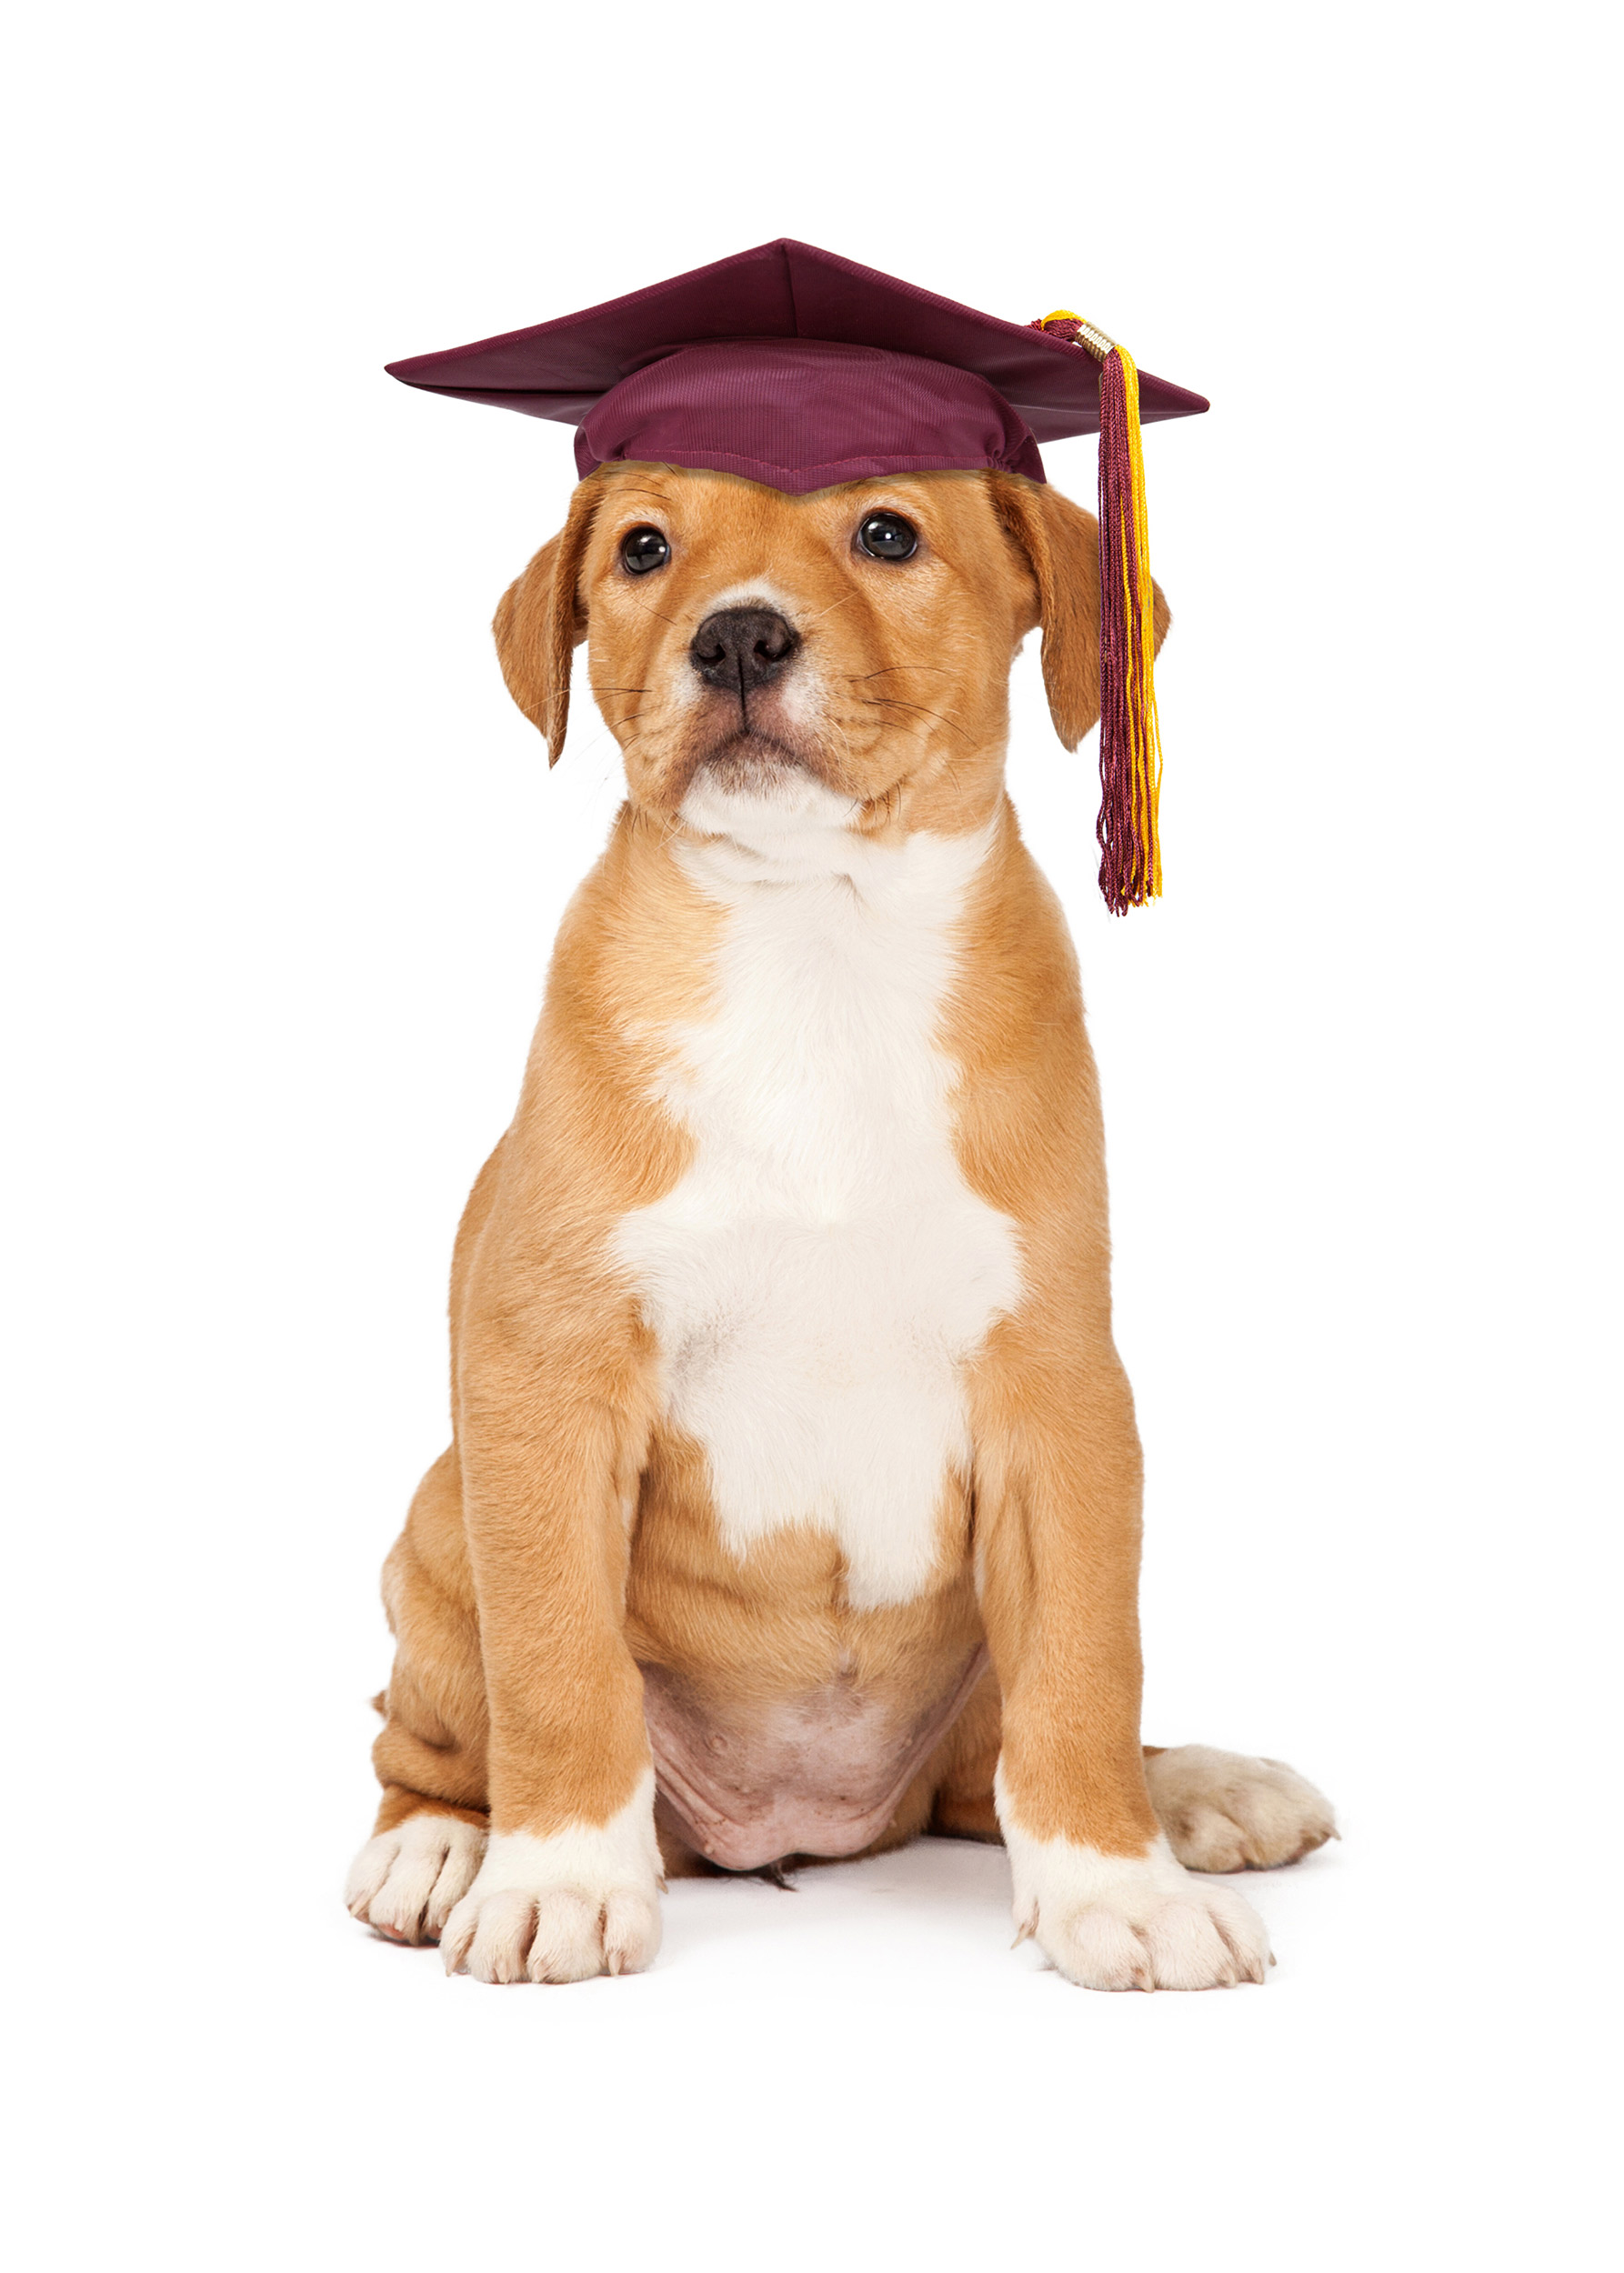 Our obedience training for puppies and adult dogs produces smart and good looking graduates.